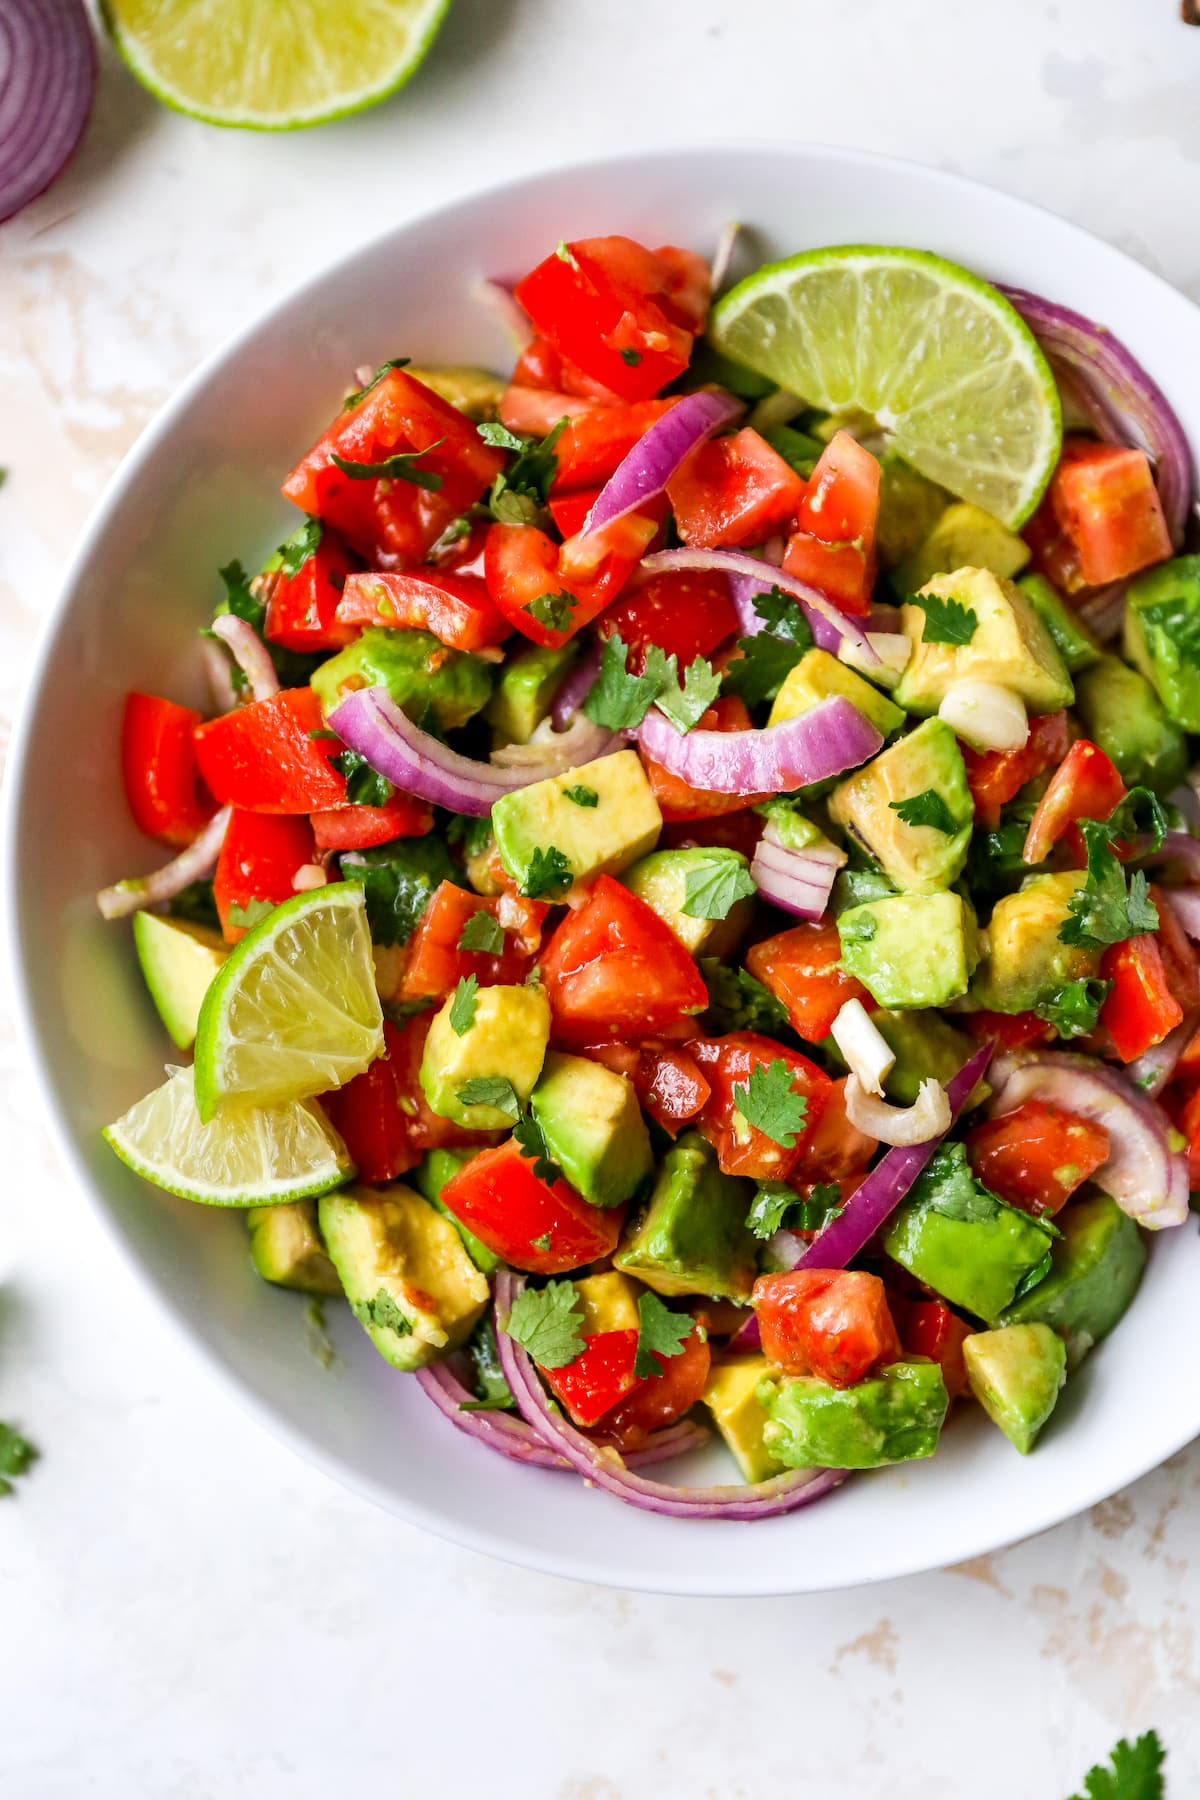 Serving bowl with avocado and tomato salad garnished with lime and cilantro.